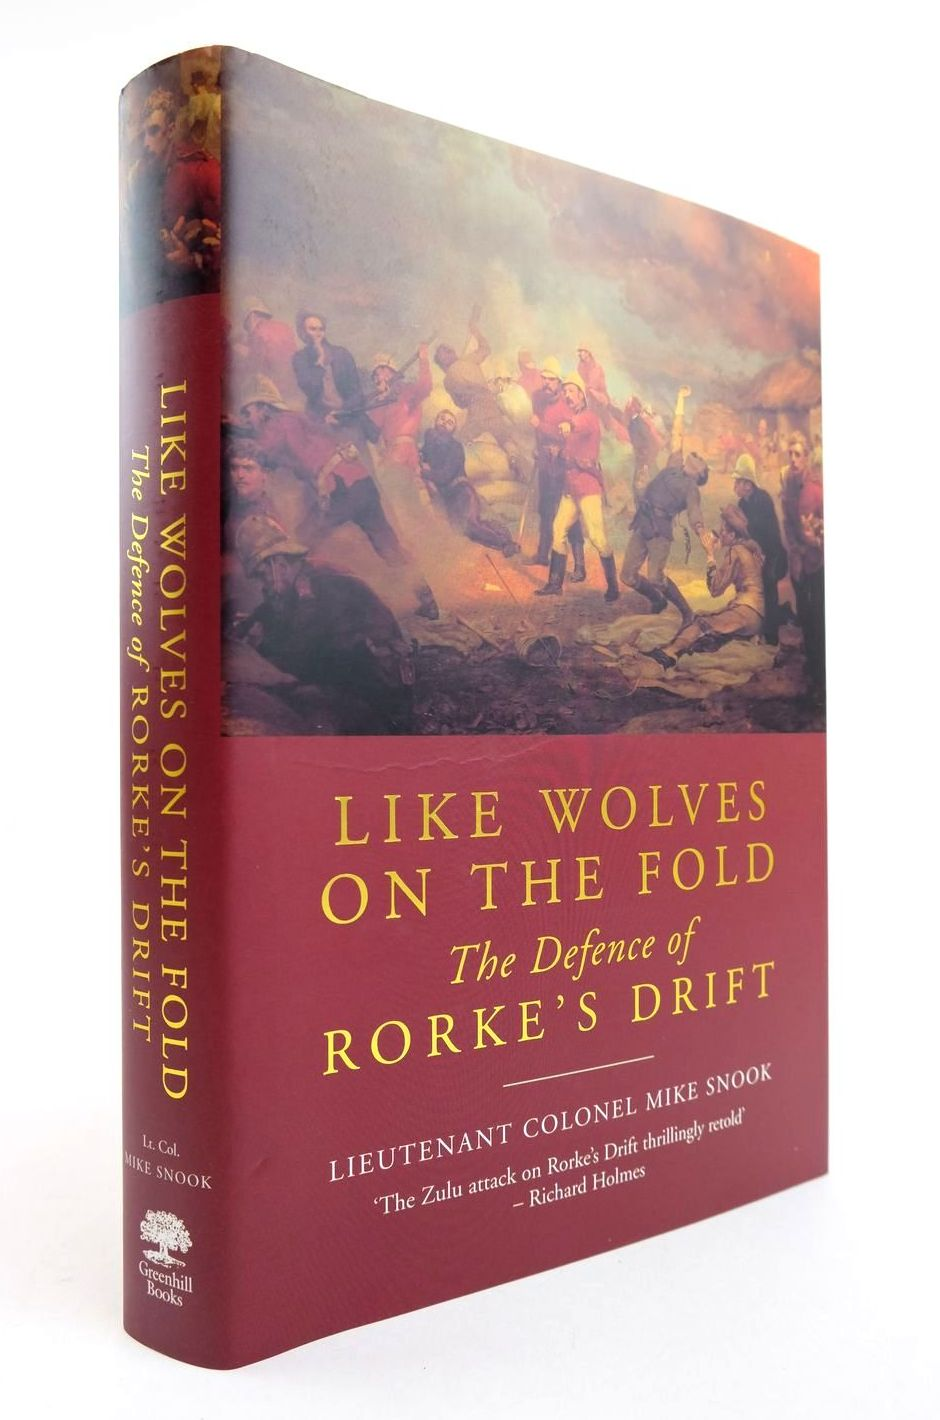 Photo of LIKE WOLVES ON THE FOLD THE DEFENCE OF RORKE'S DRIFT- Stock Number: 2132318